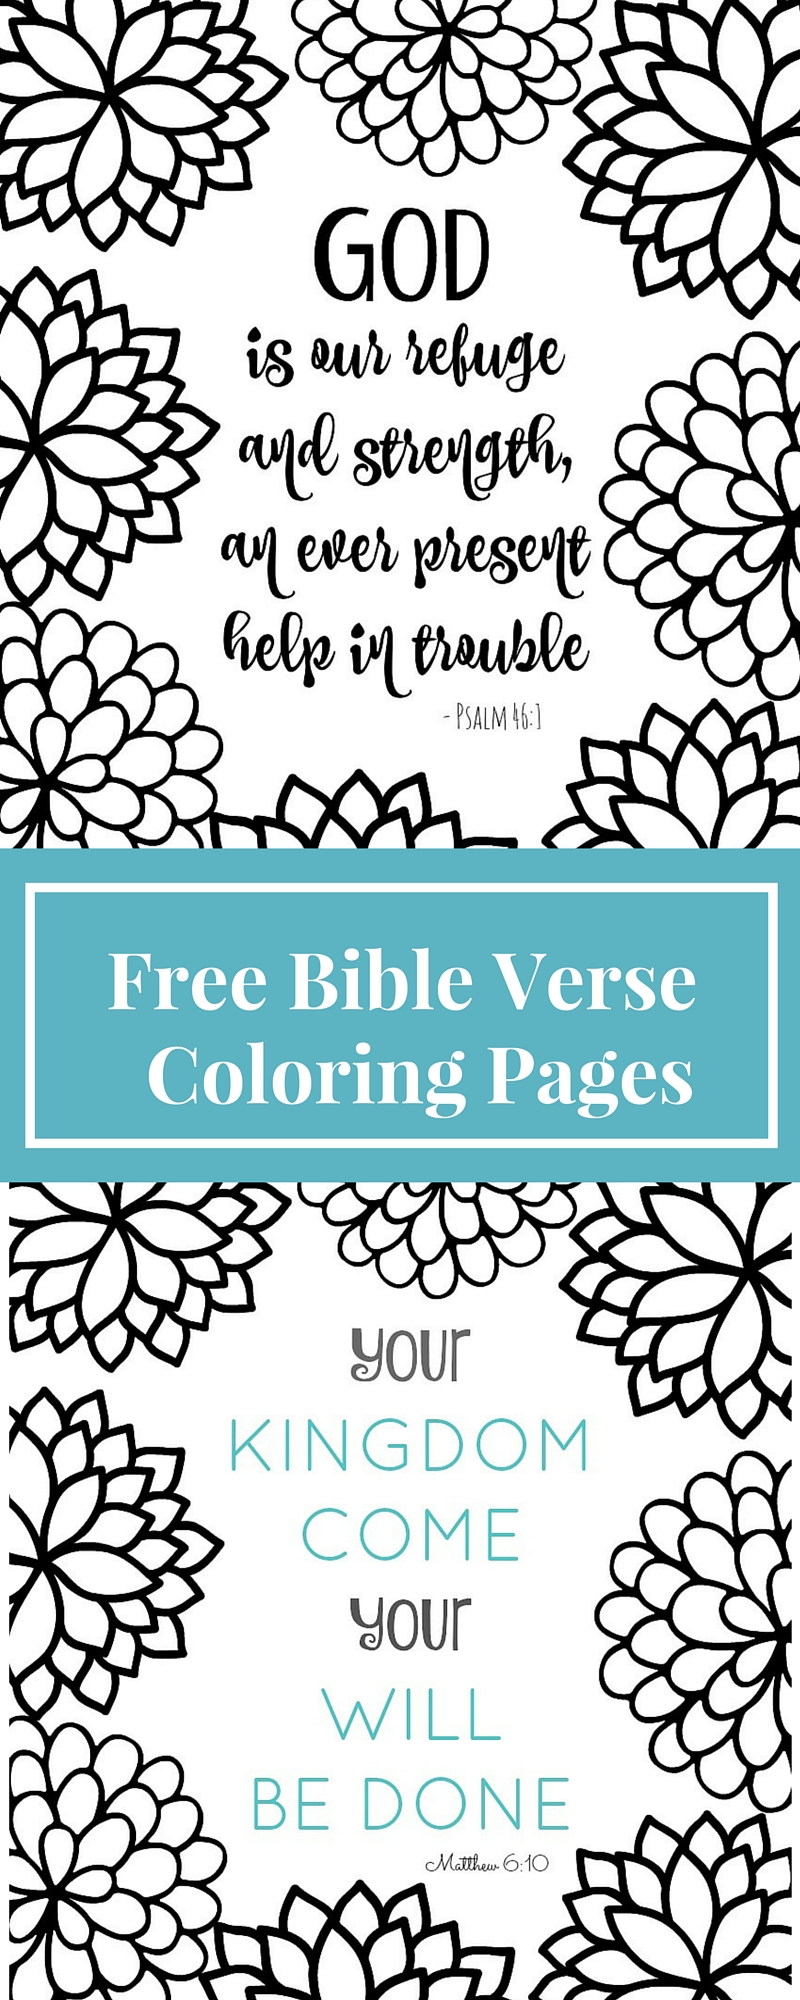 coloring pages are for grown ups now these bible verse coloring page printables are fun - Christian Coloring Pages For Adults